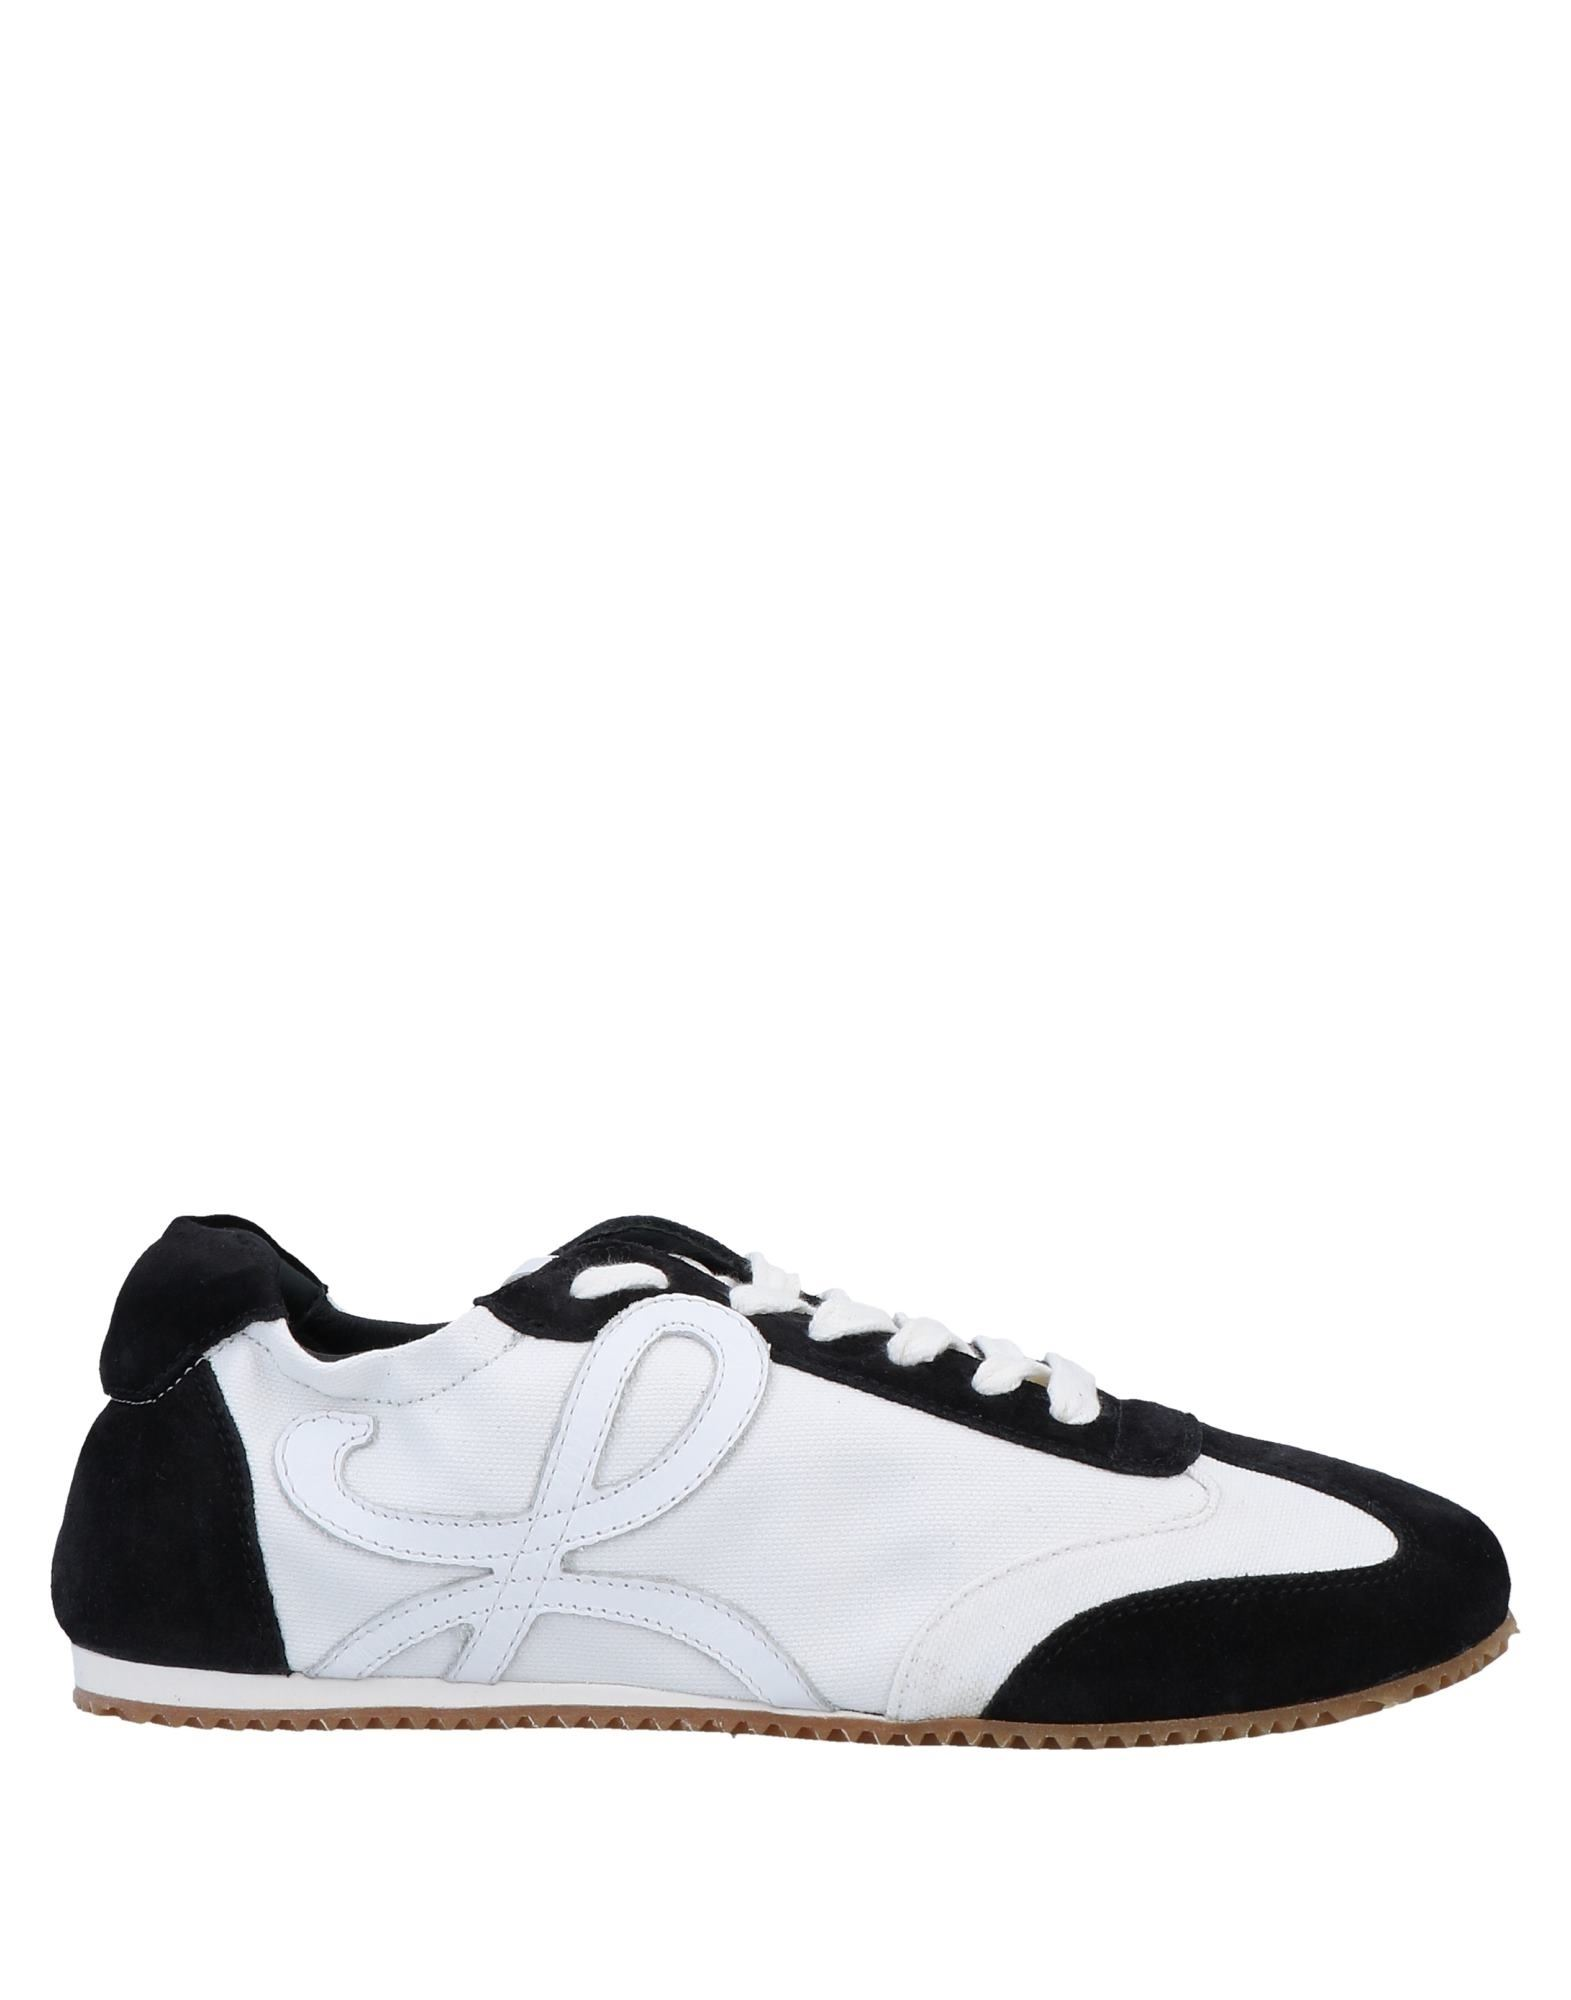 LOEWE Sneakers. canvas, suede effect, logo, two-tone, laces, round toeline, flat, leather lining, rubber cleated sole, contains non-textile parts of animal origin. Soft Leather, Textile fibers